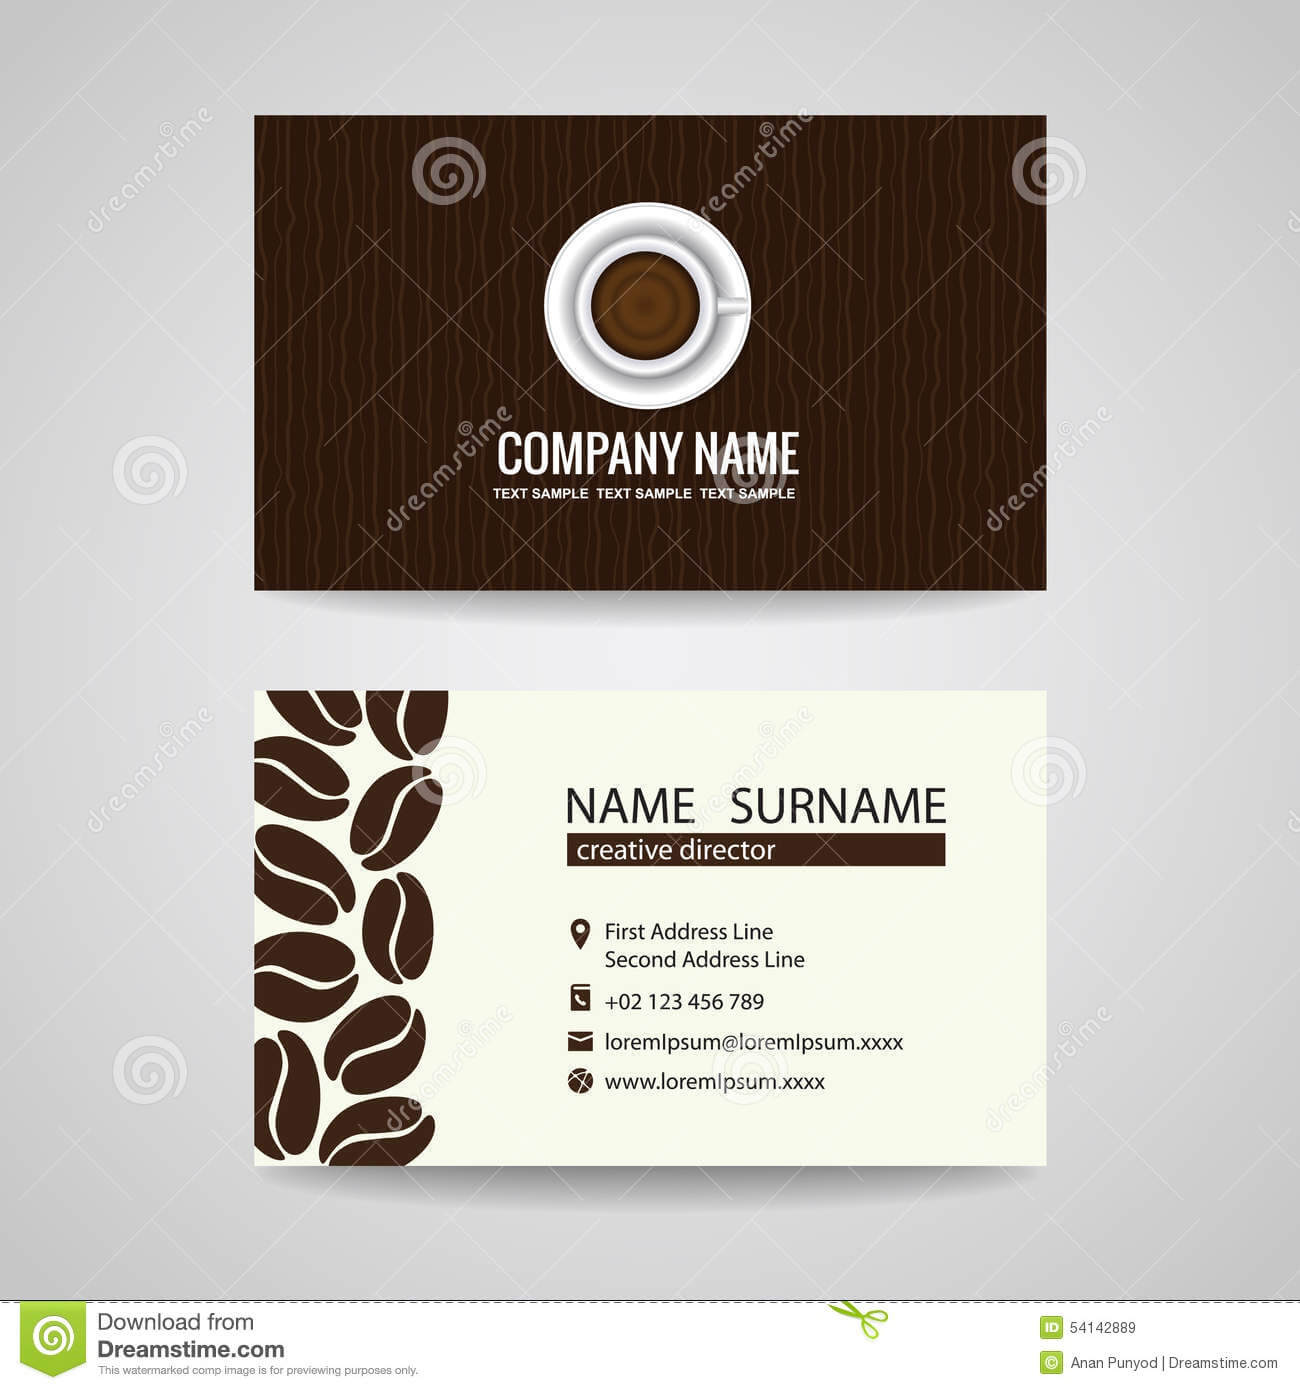 Business Card Vector Graphic Design , Coffee Cup And Coffee Regarding Coffee Business Card Template Free